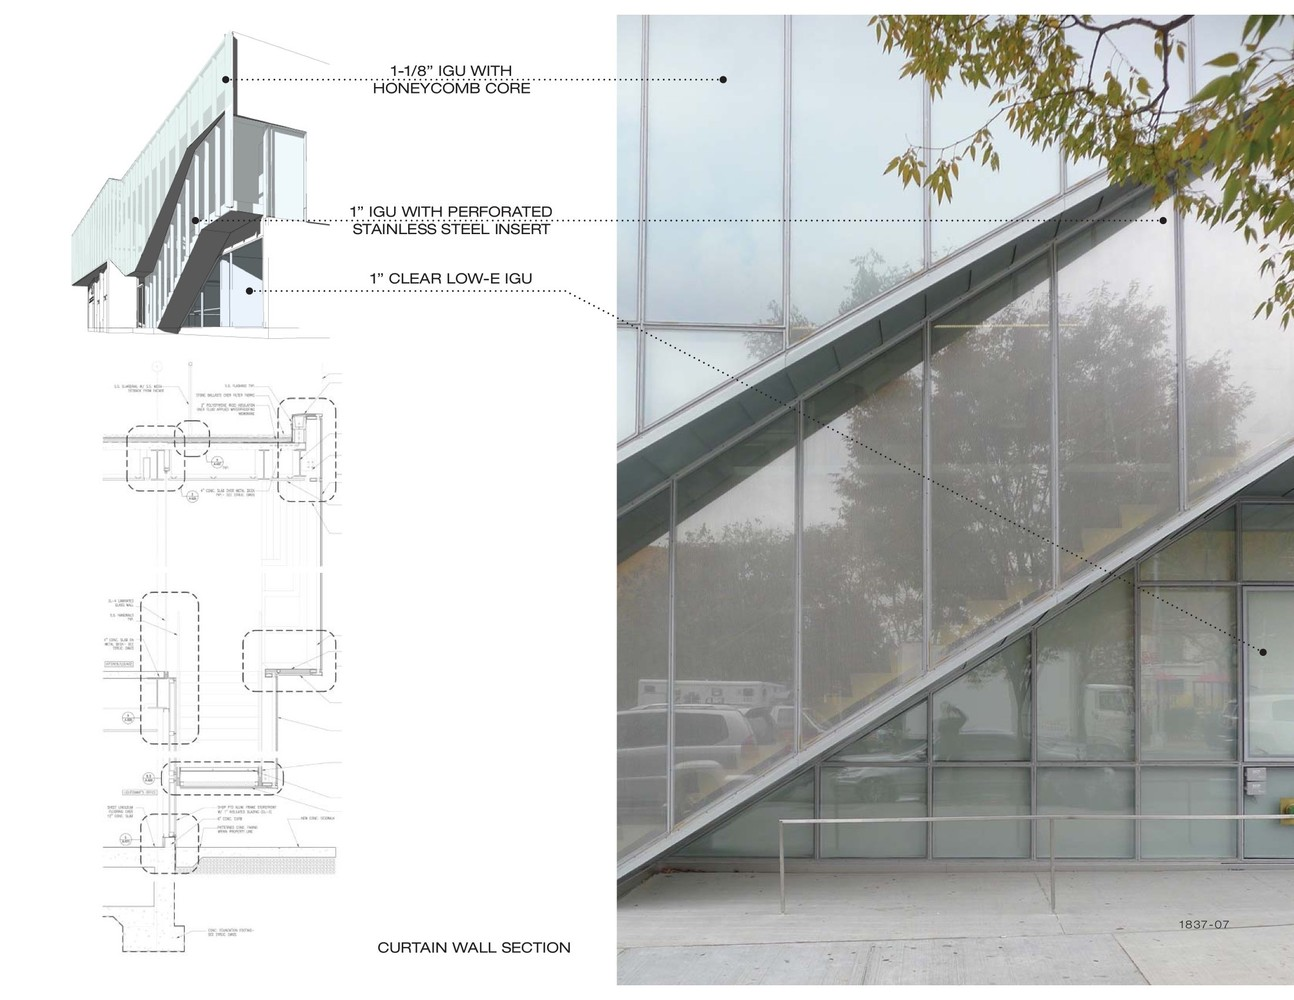 Greenpoint EMS StationCurtain Wall Diagram